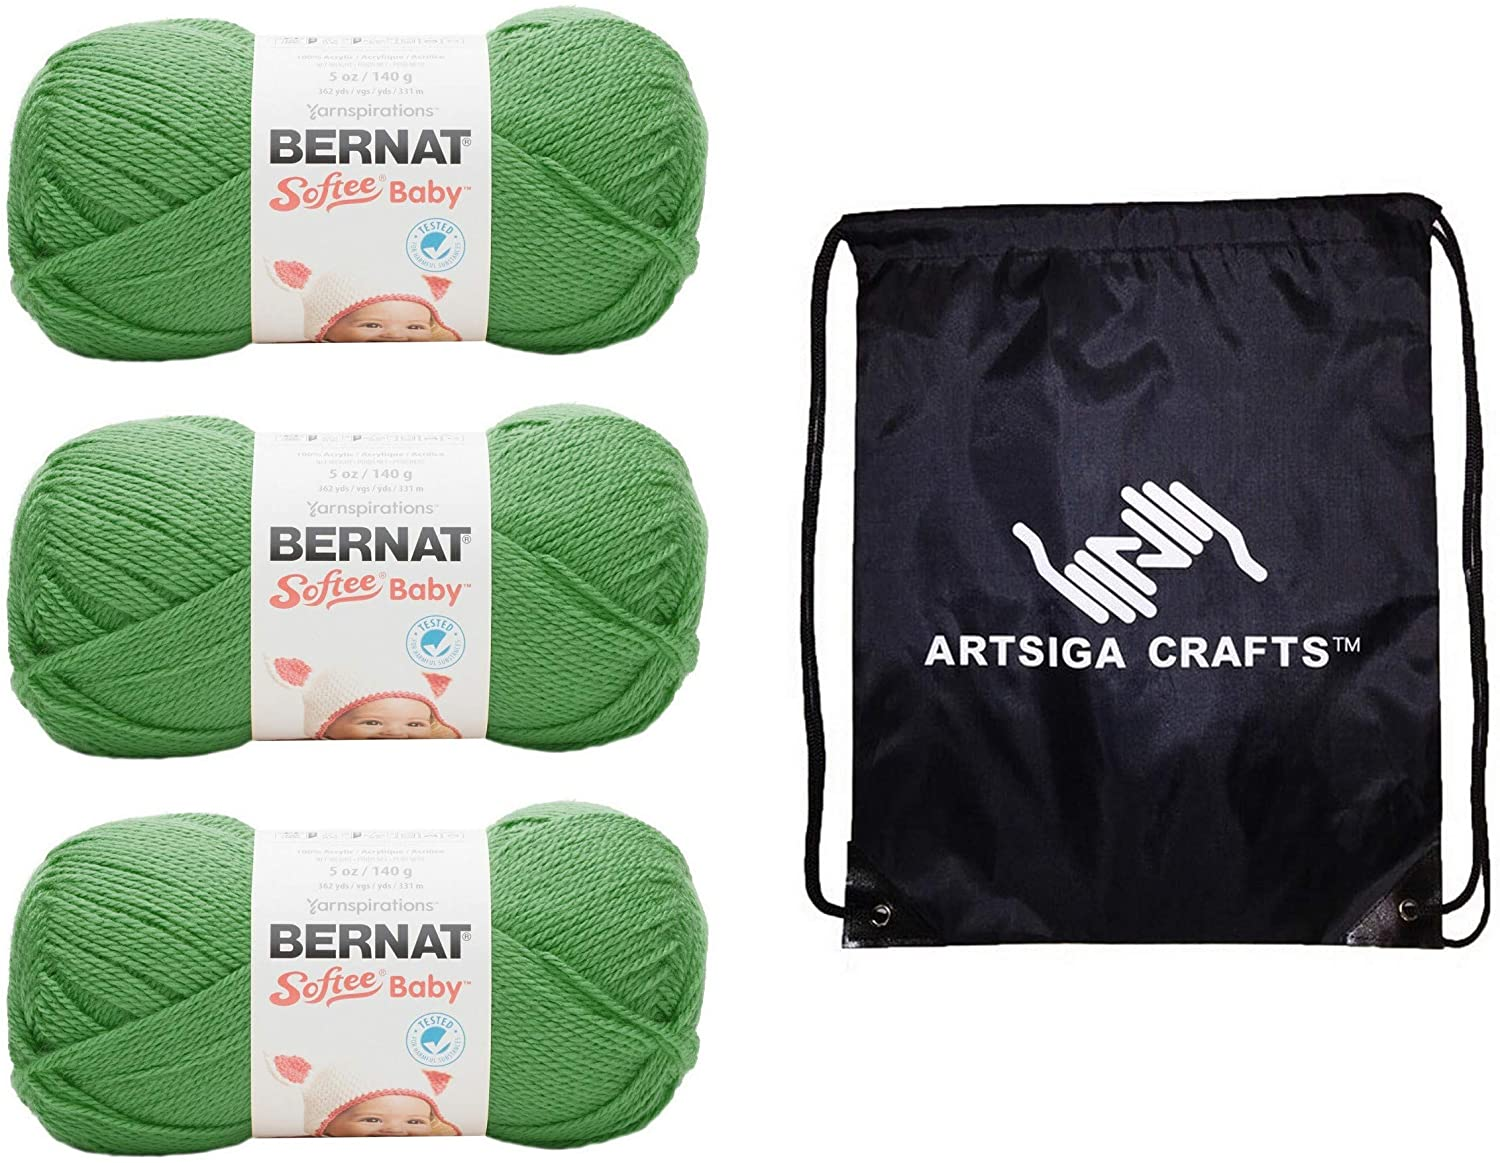 Bernat Knitting Yarn Softee Baby Grass Green 3-Skein Factory Pack (Same Dyelot) 166054-54003 Bundle with 1 Artsiga Crafts Project Bag